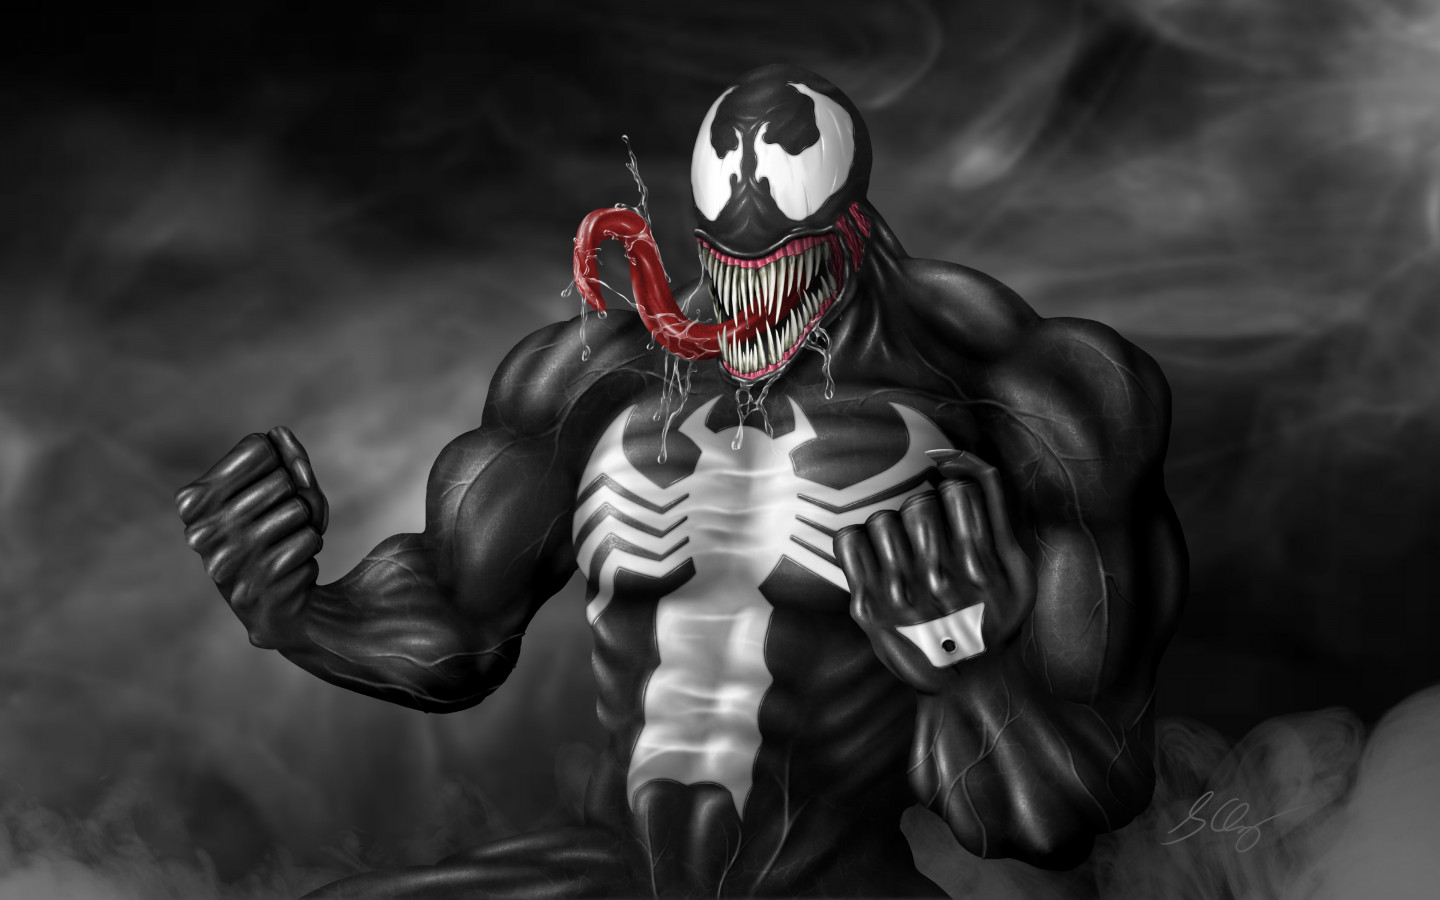 Venom fan art | 1440x900 wallpaper